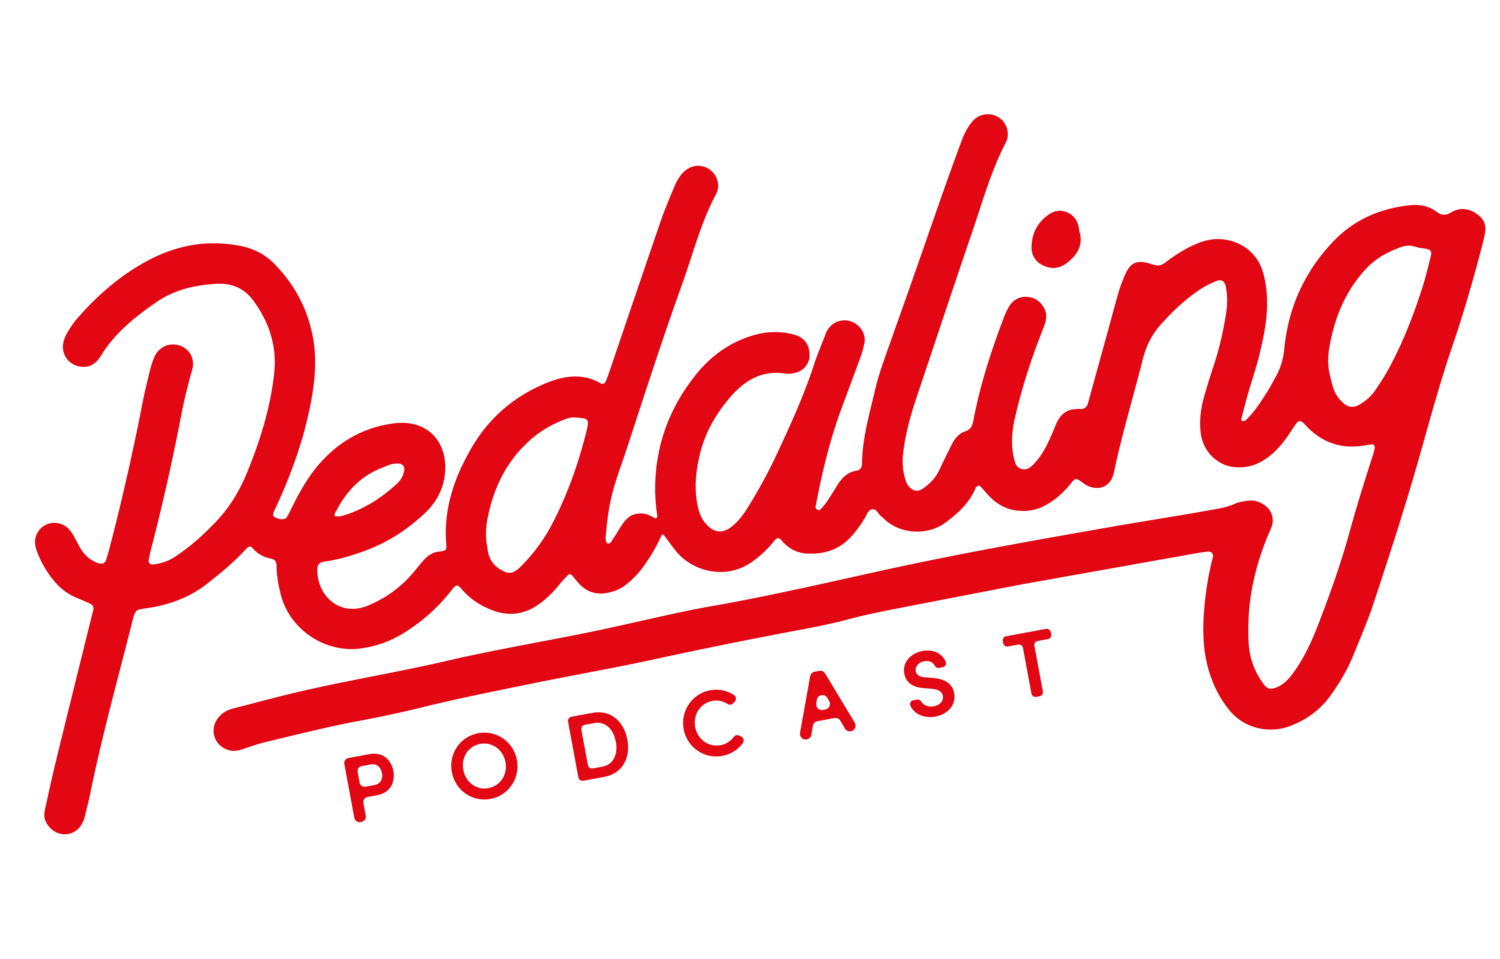 Pedaling Podcast